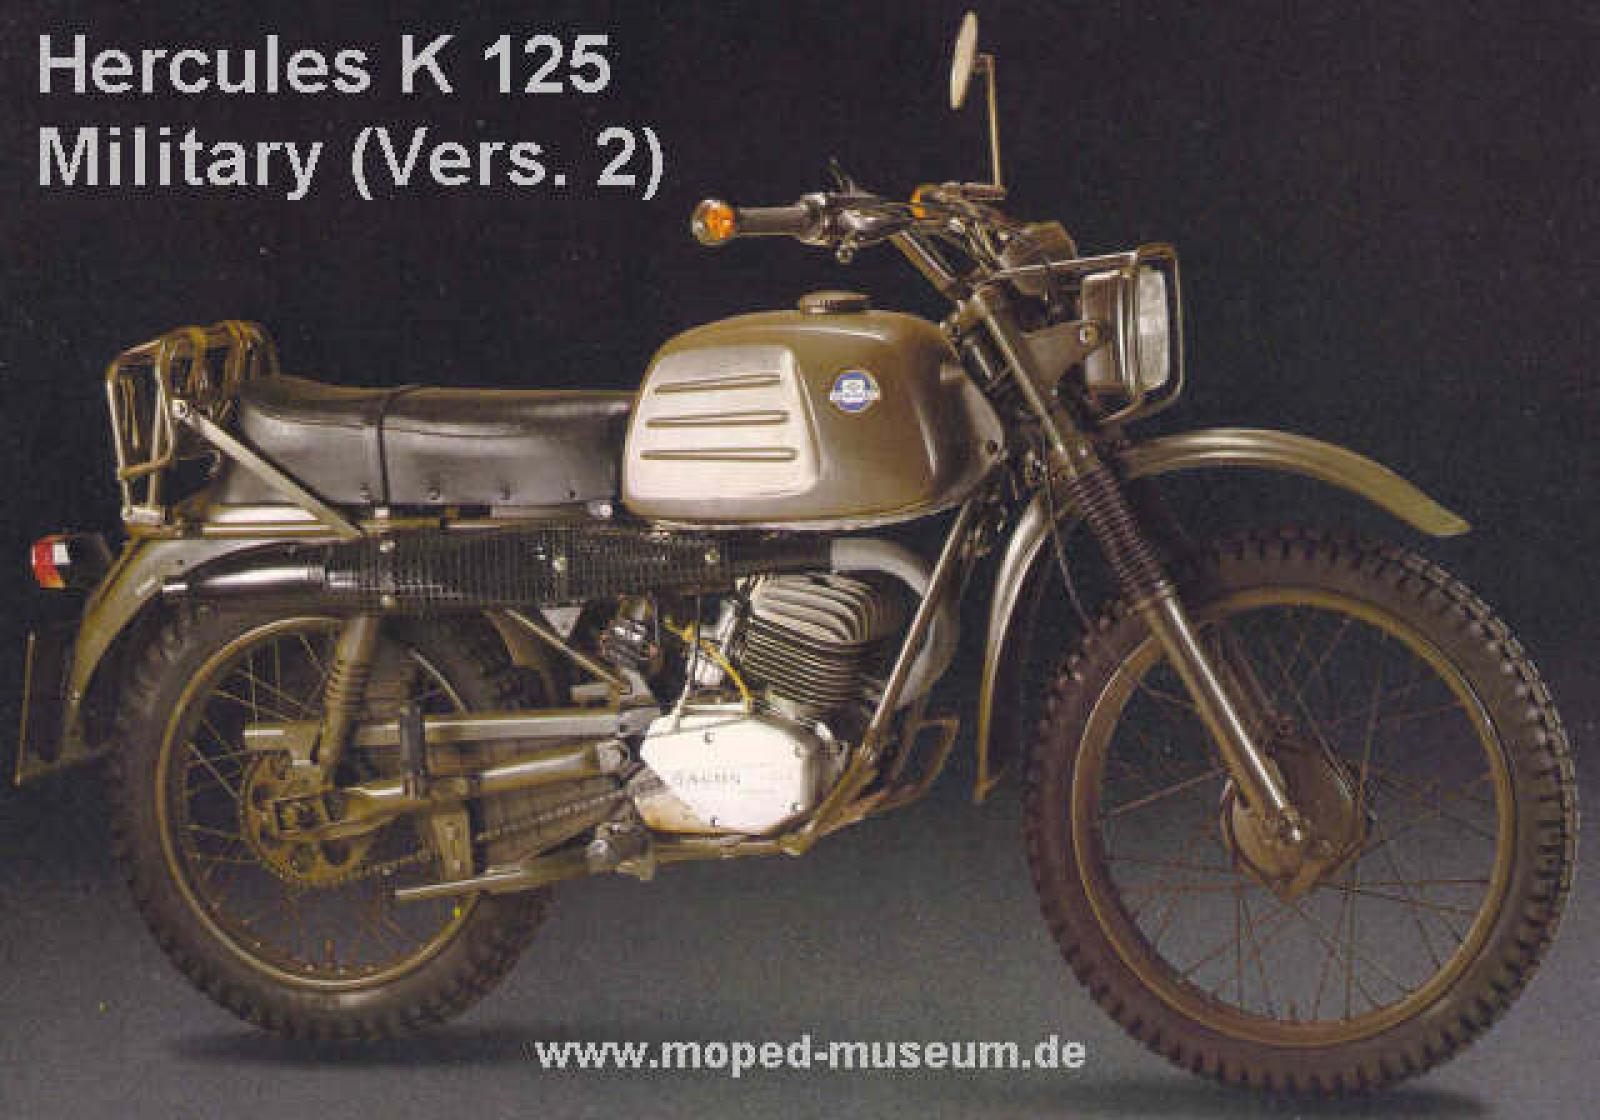 Hercules K 125 Military 1987 images #147201